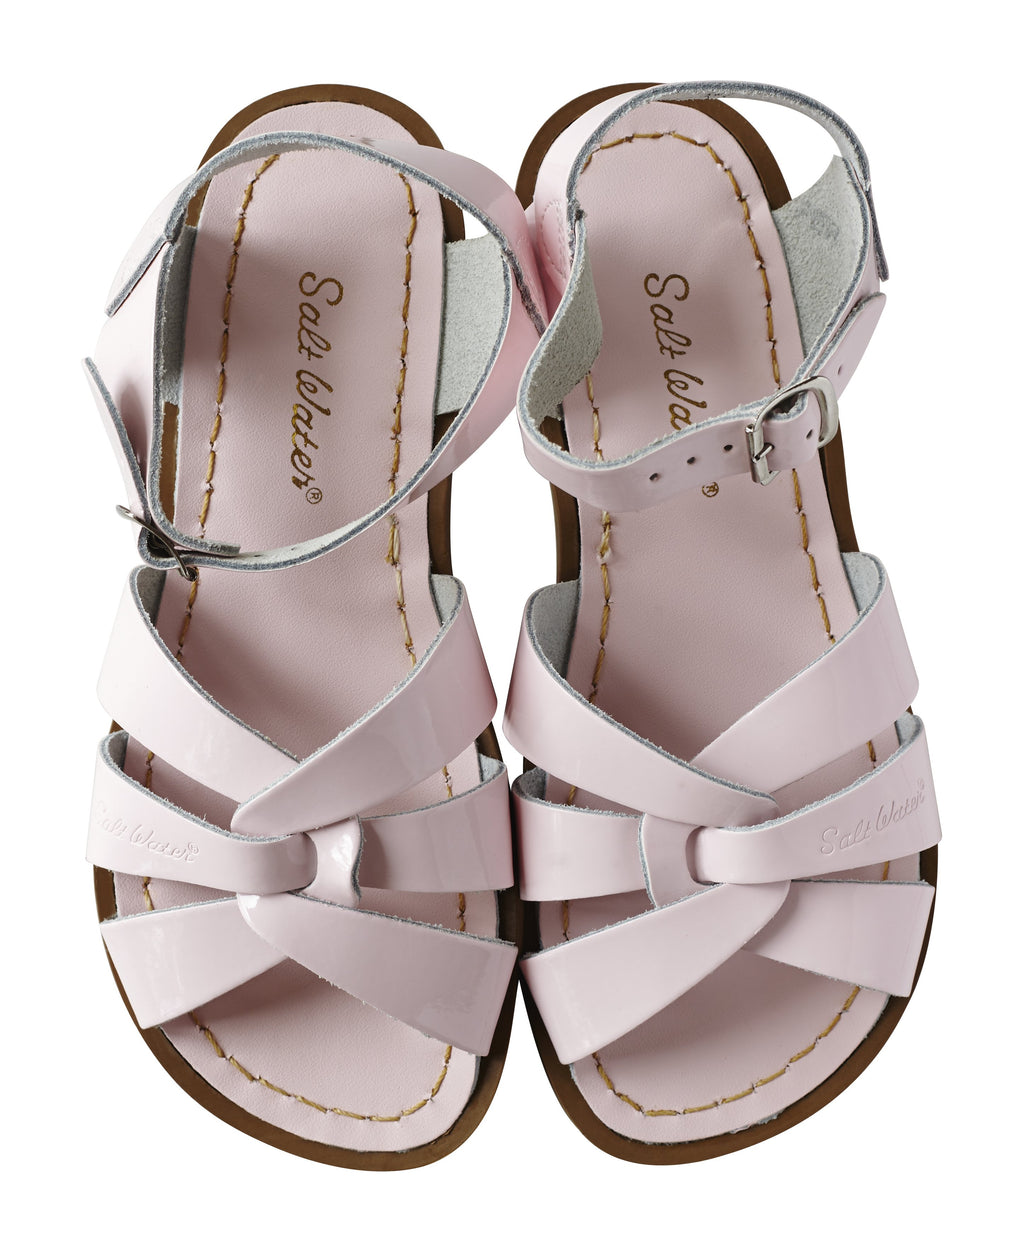 Salt Water Sandals Originals Shiny Pink